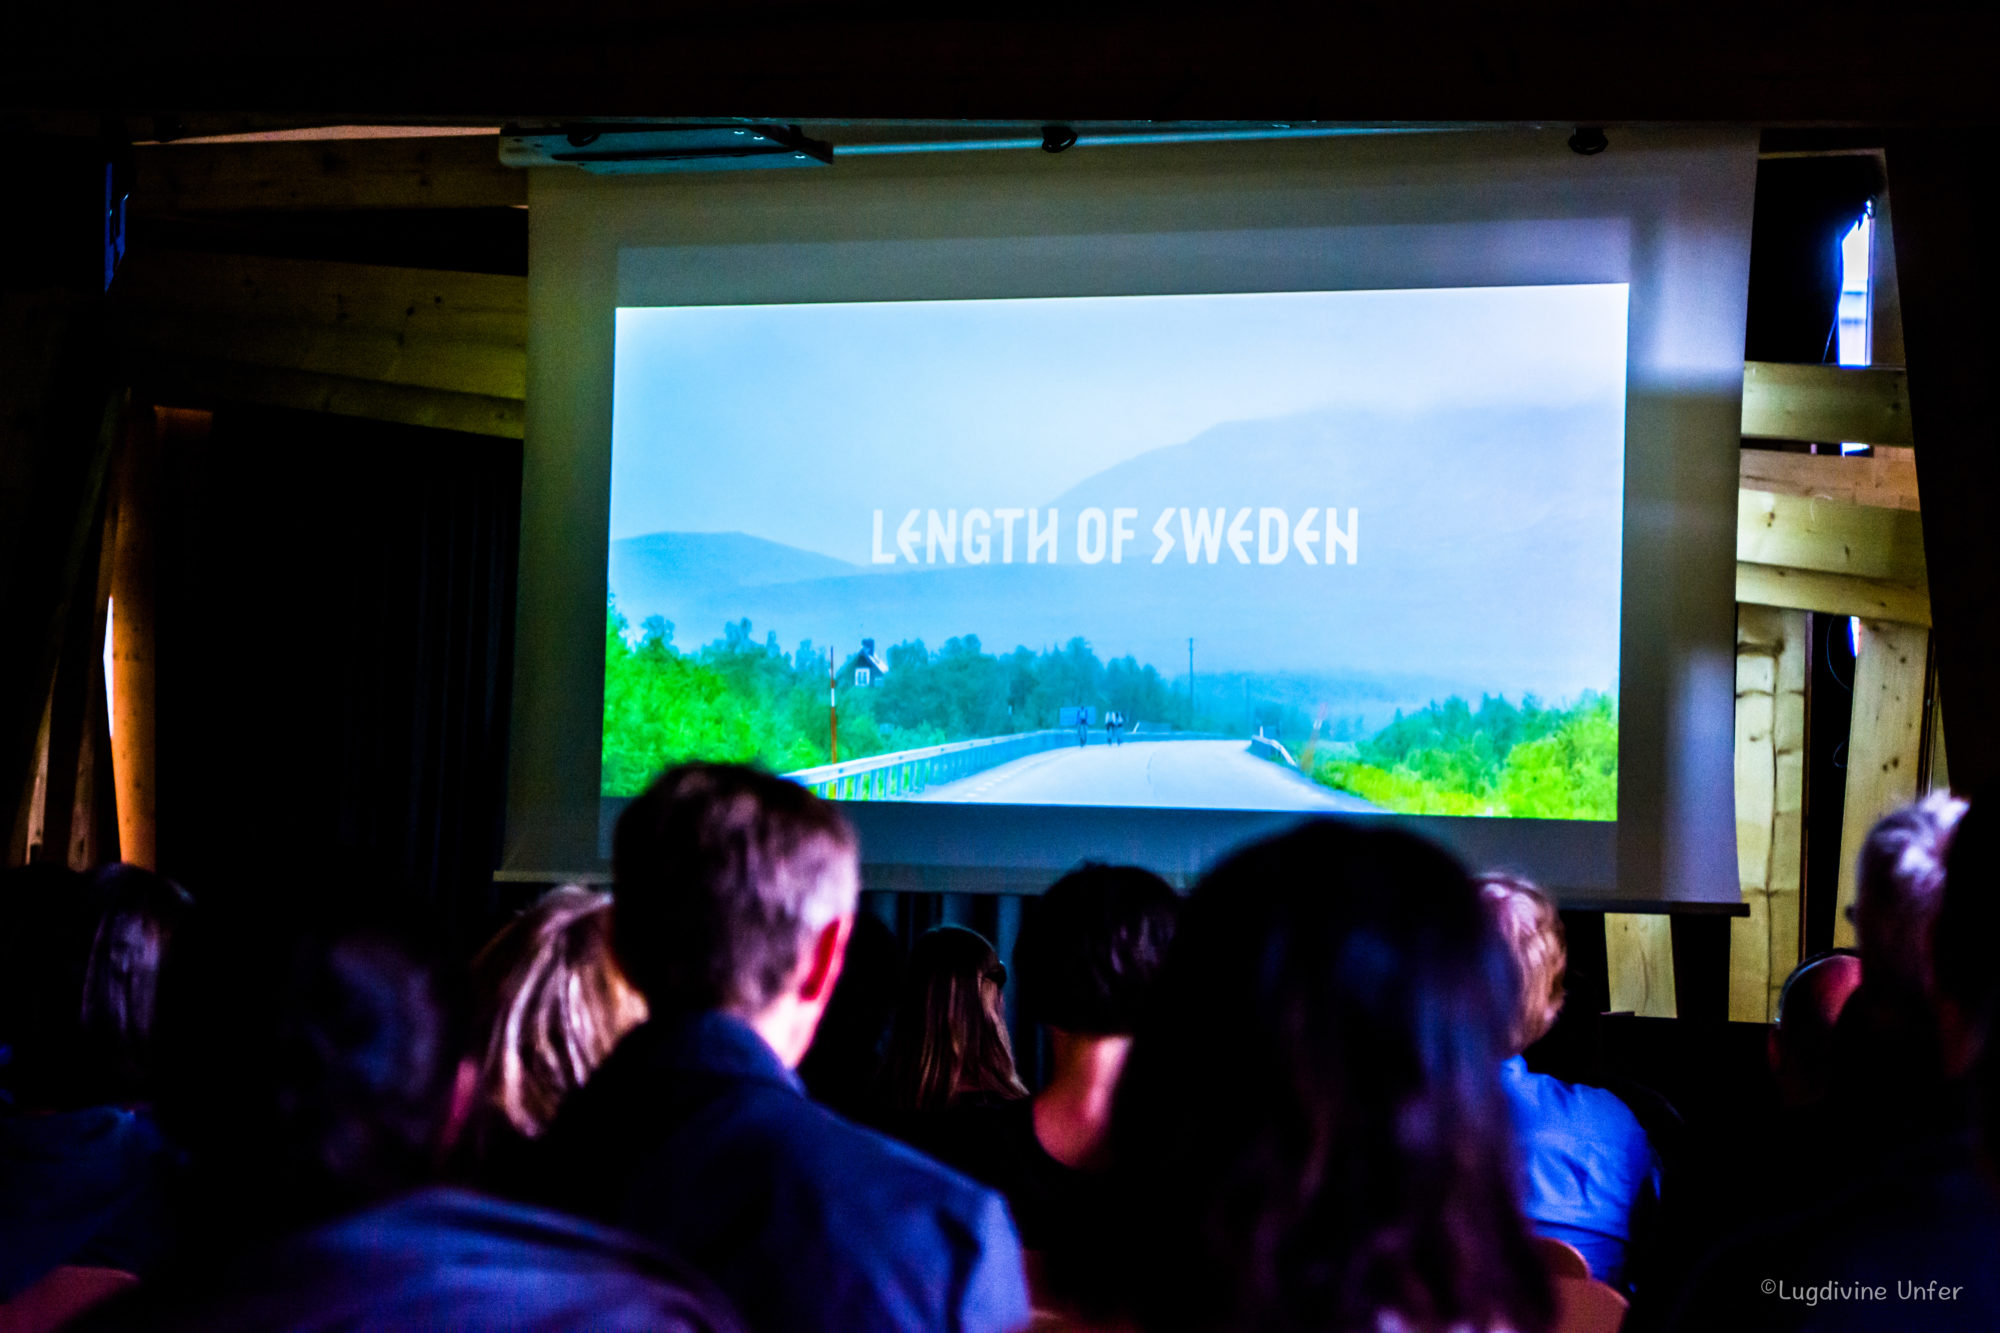 Bloft-FilmNight-Rotondes-Luxembourg-27042017-by-Lugdivine-Unfer-80